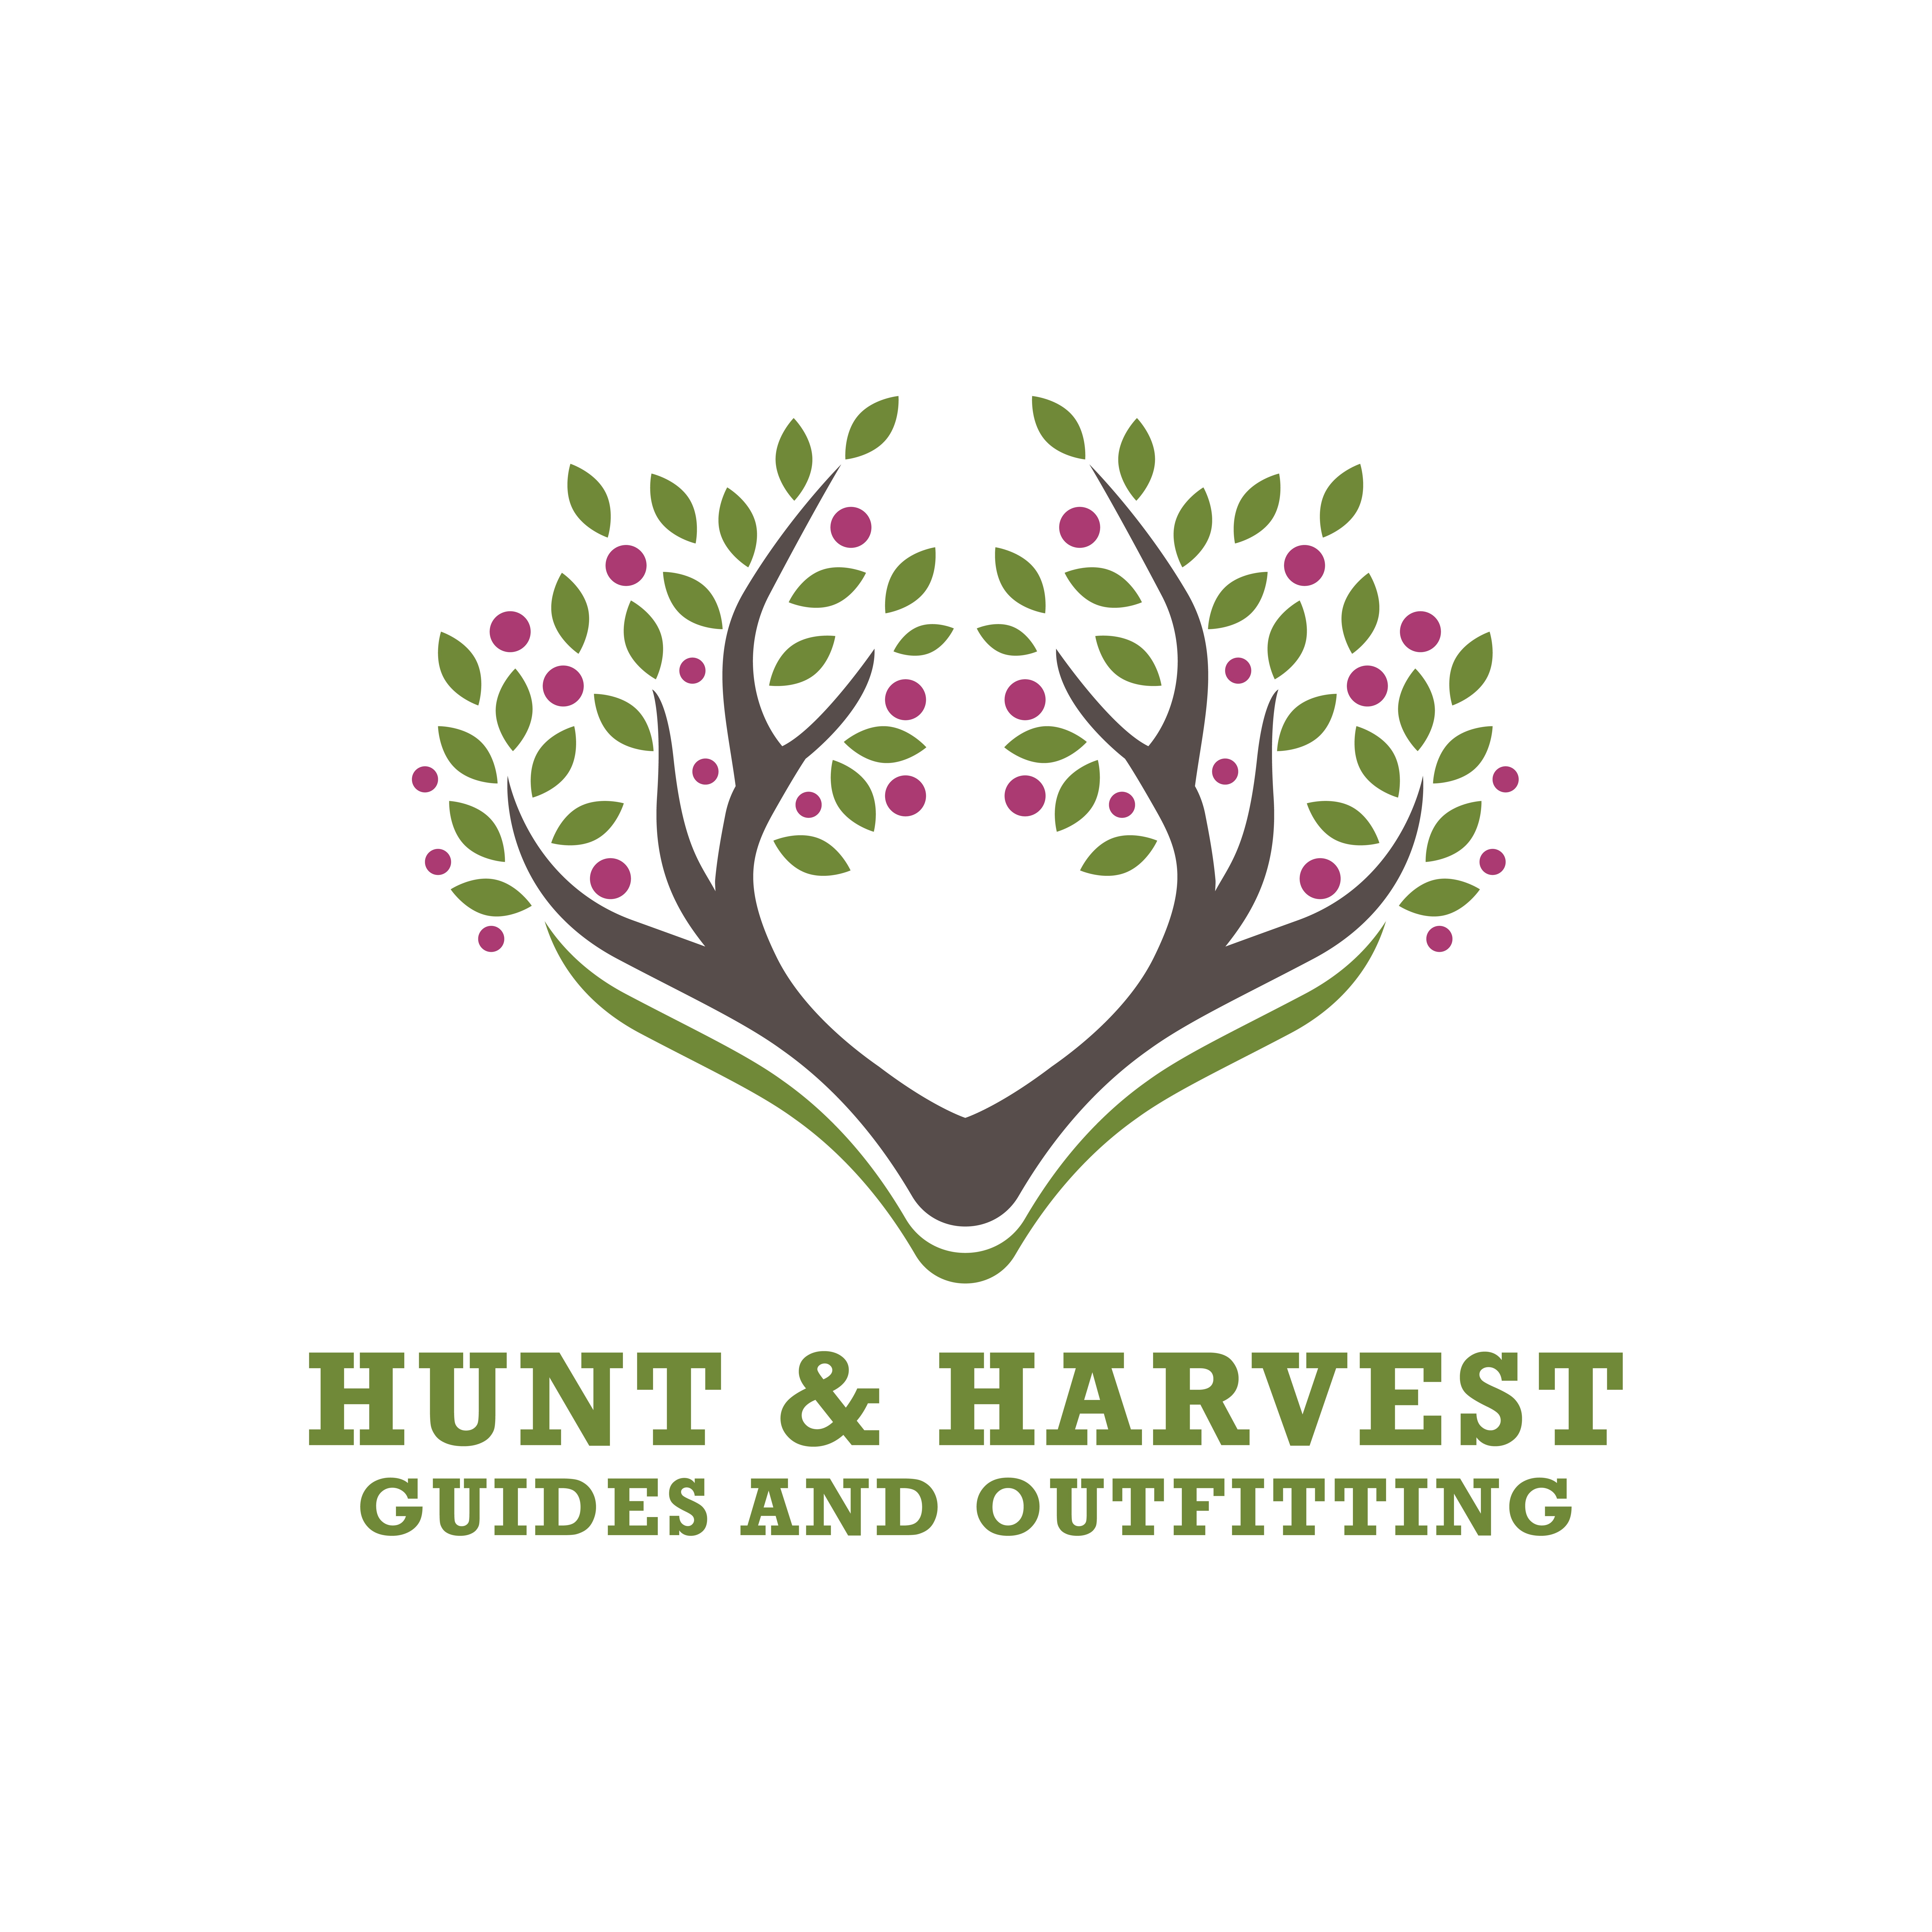 Logo needed for a hunt/forage guide company in AZ